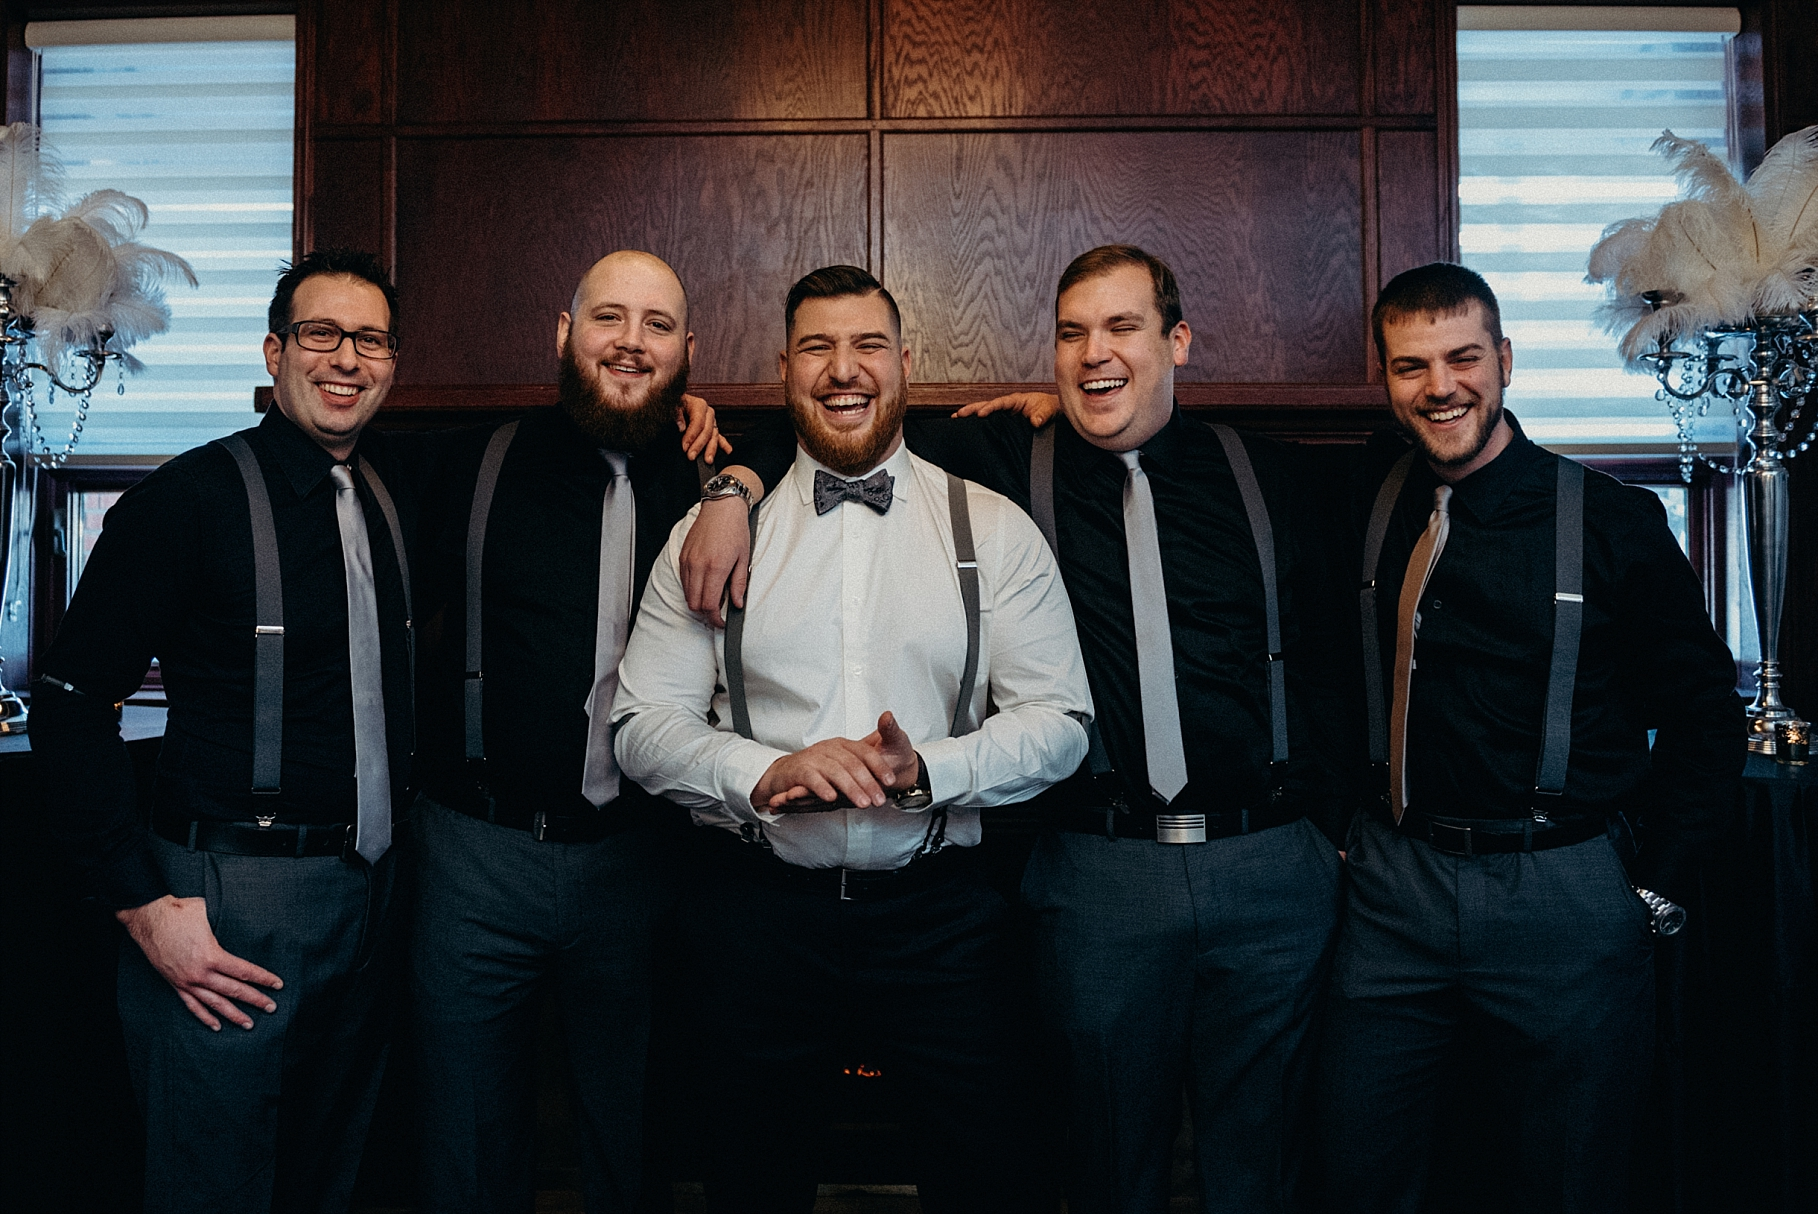 Orchard View Wedding by Mocha Tree Studios Ottawa Wedding and Engagement Photographer and Videographer Dark Moody Intimate Authentic Modern Romantic Cinematic Best Candid  17